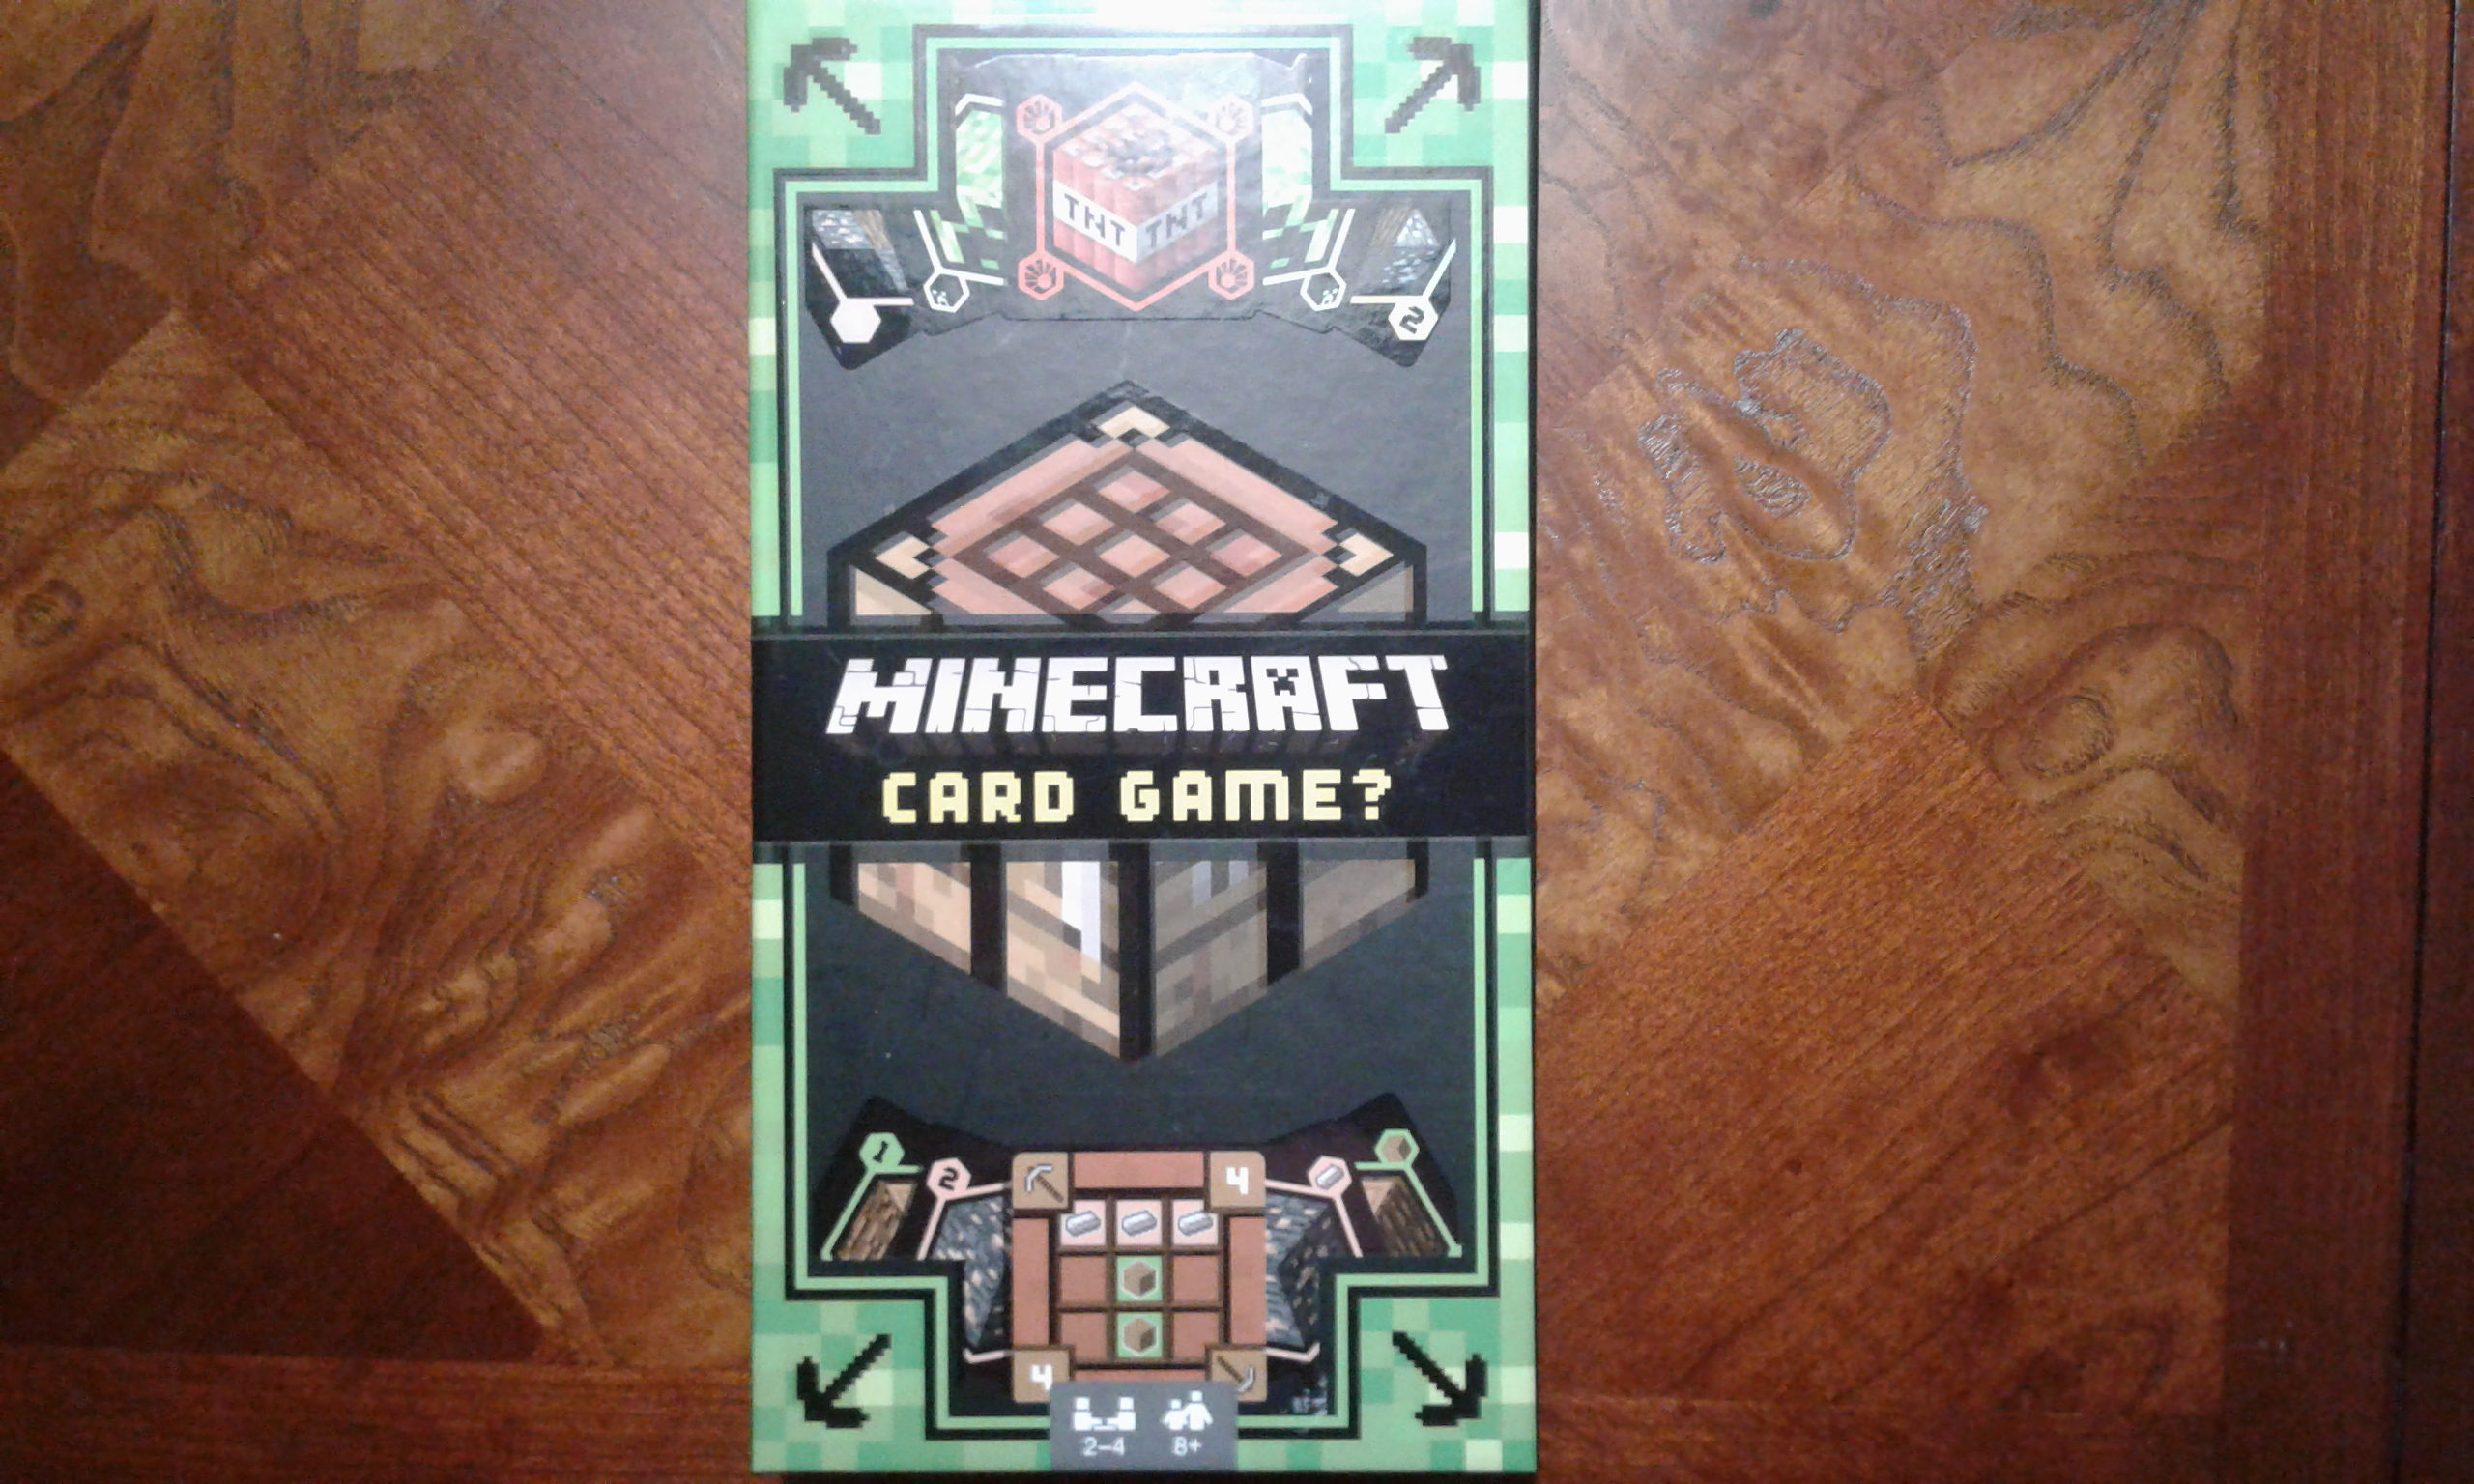 Minecraft: Card Game?